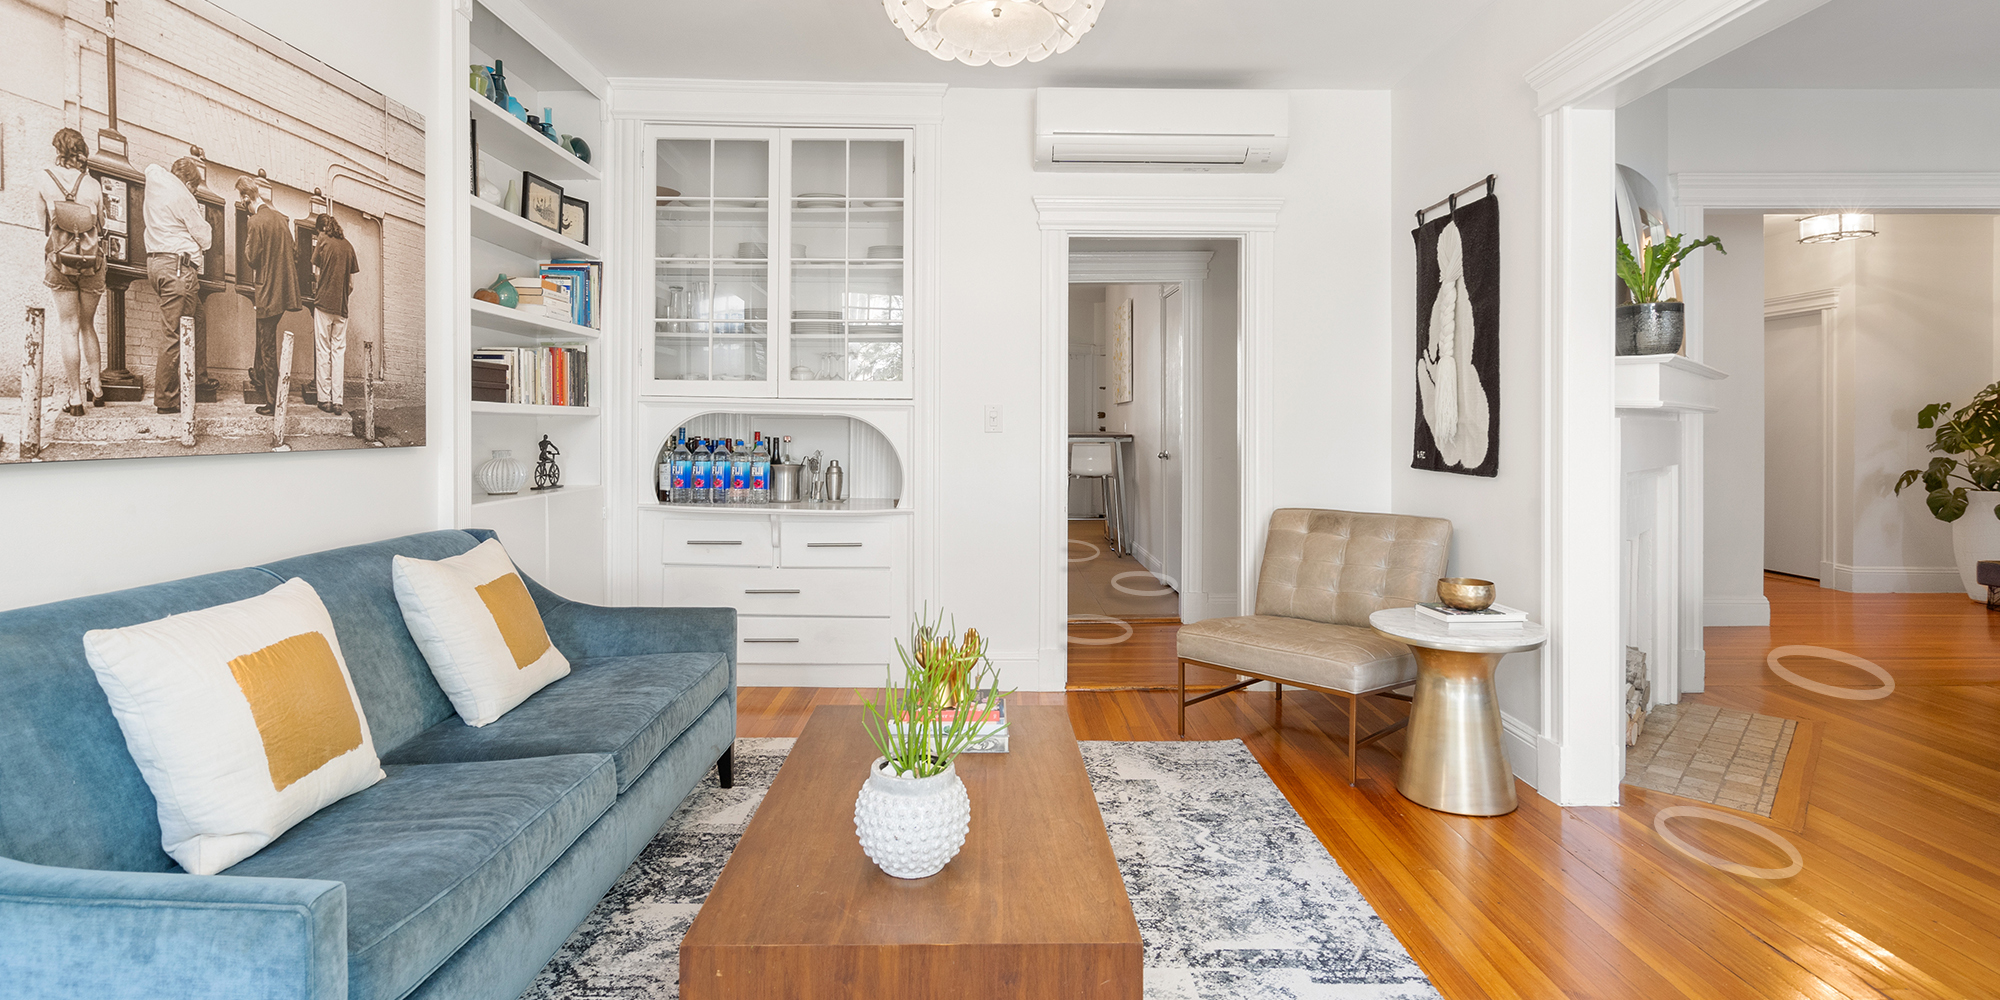 [VIRTUAL TOUR]: Step Inside this Sun-Filled 3-Bedroom Condo Now For Sale in Brookline at $1.079M